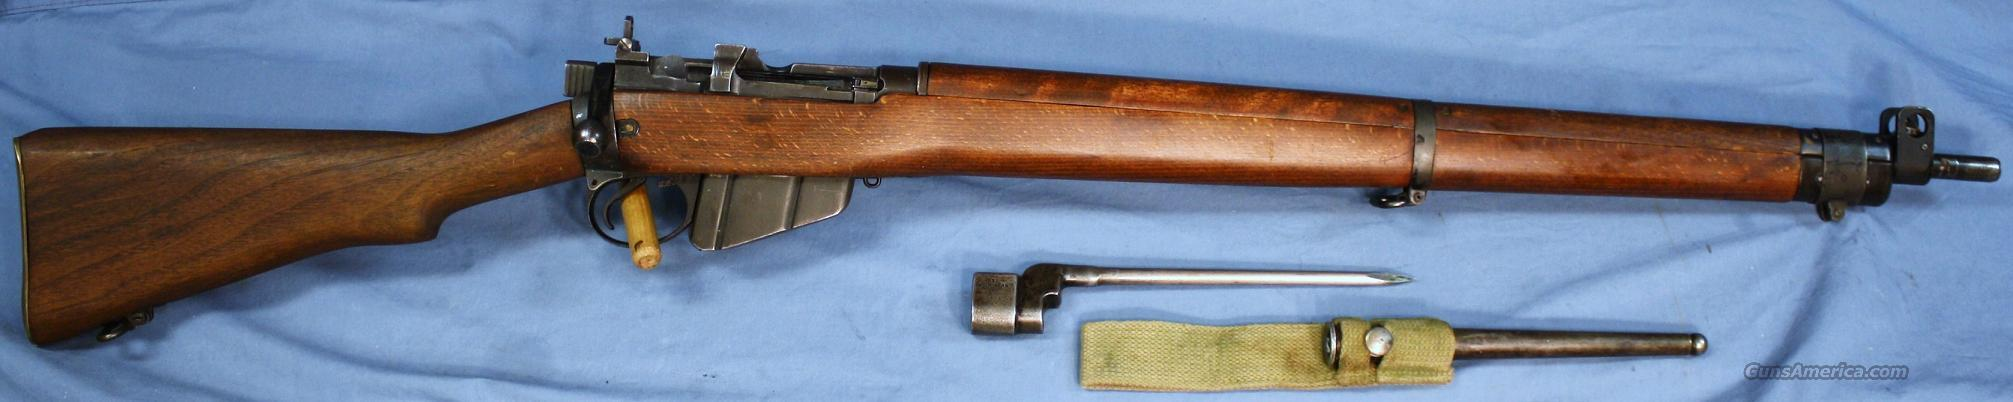 Enfield No. 4 MK I * Long Branch WWII Bolt Action Rifle .303 British Made 1944 with Bayonet  Guns > Rifles > Enfield Rifle